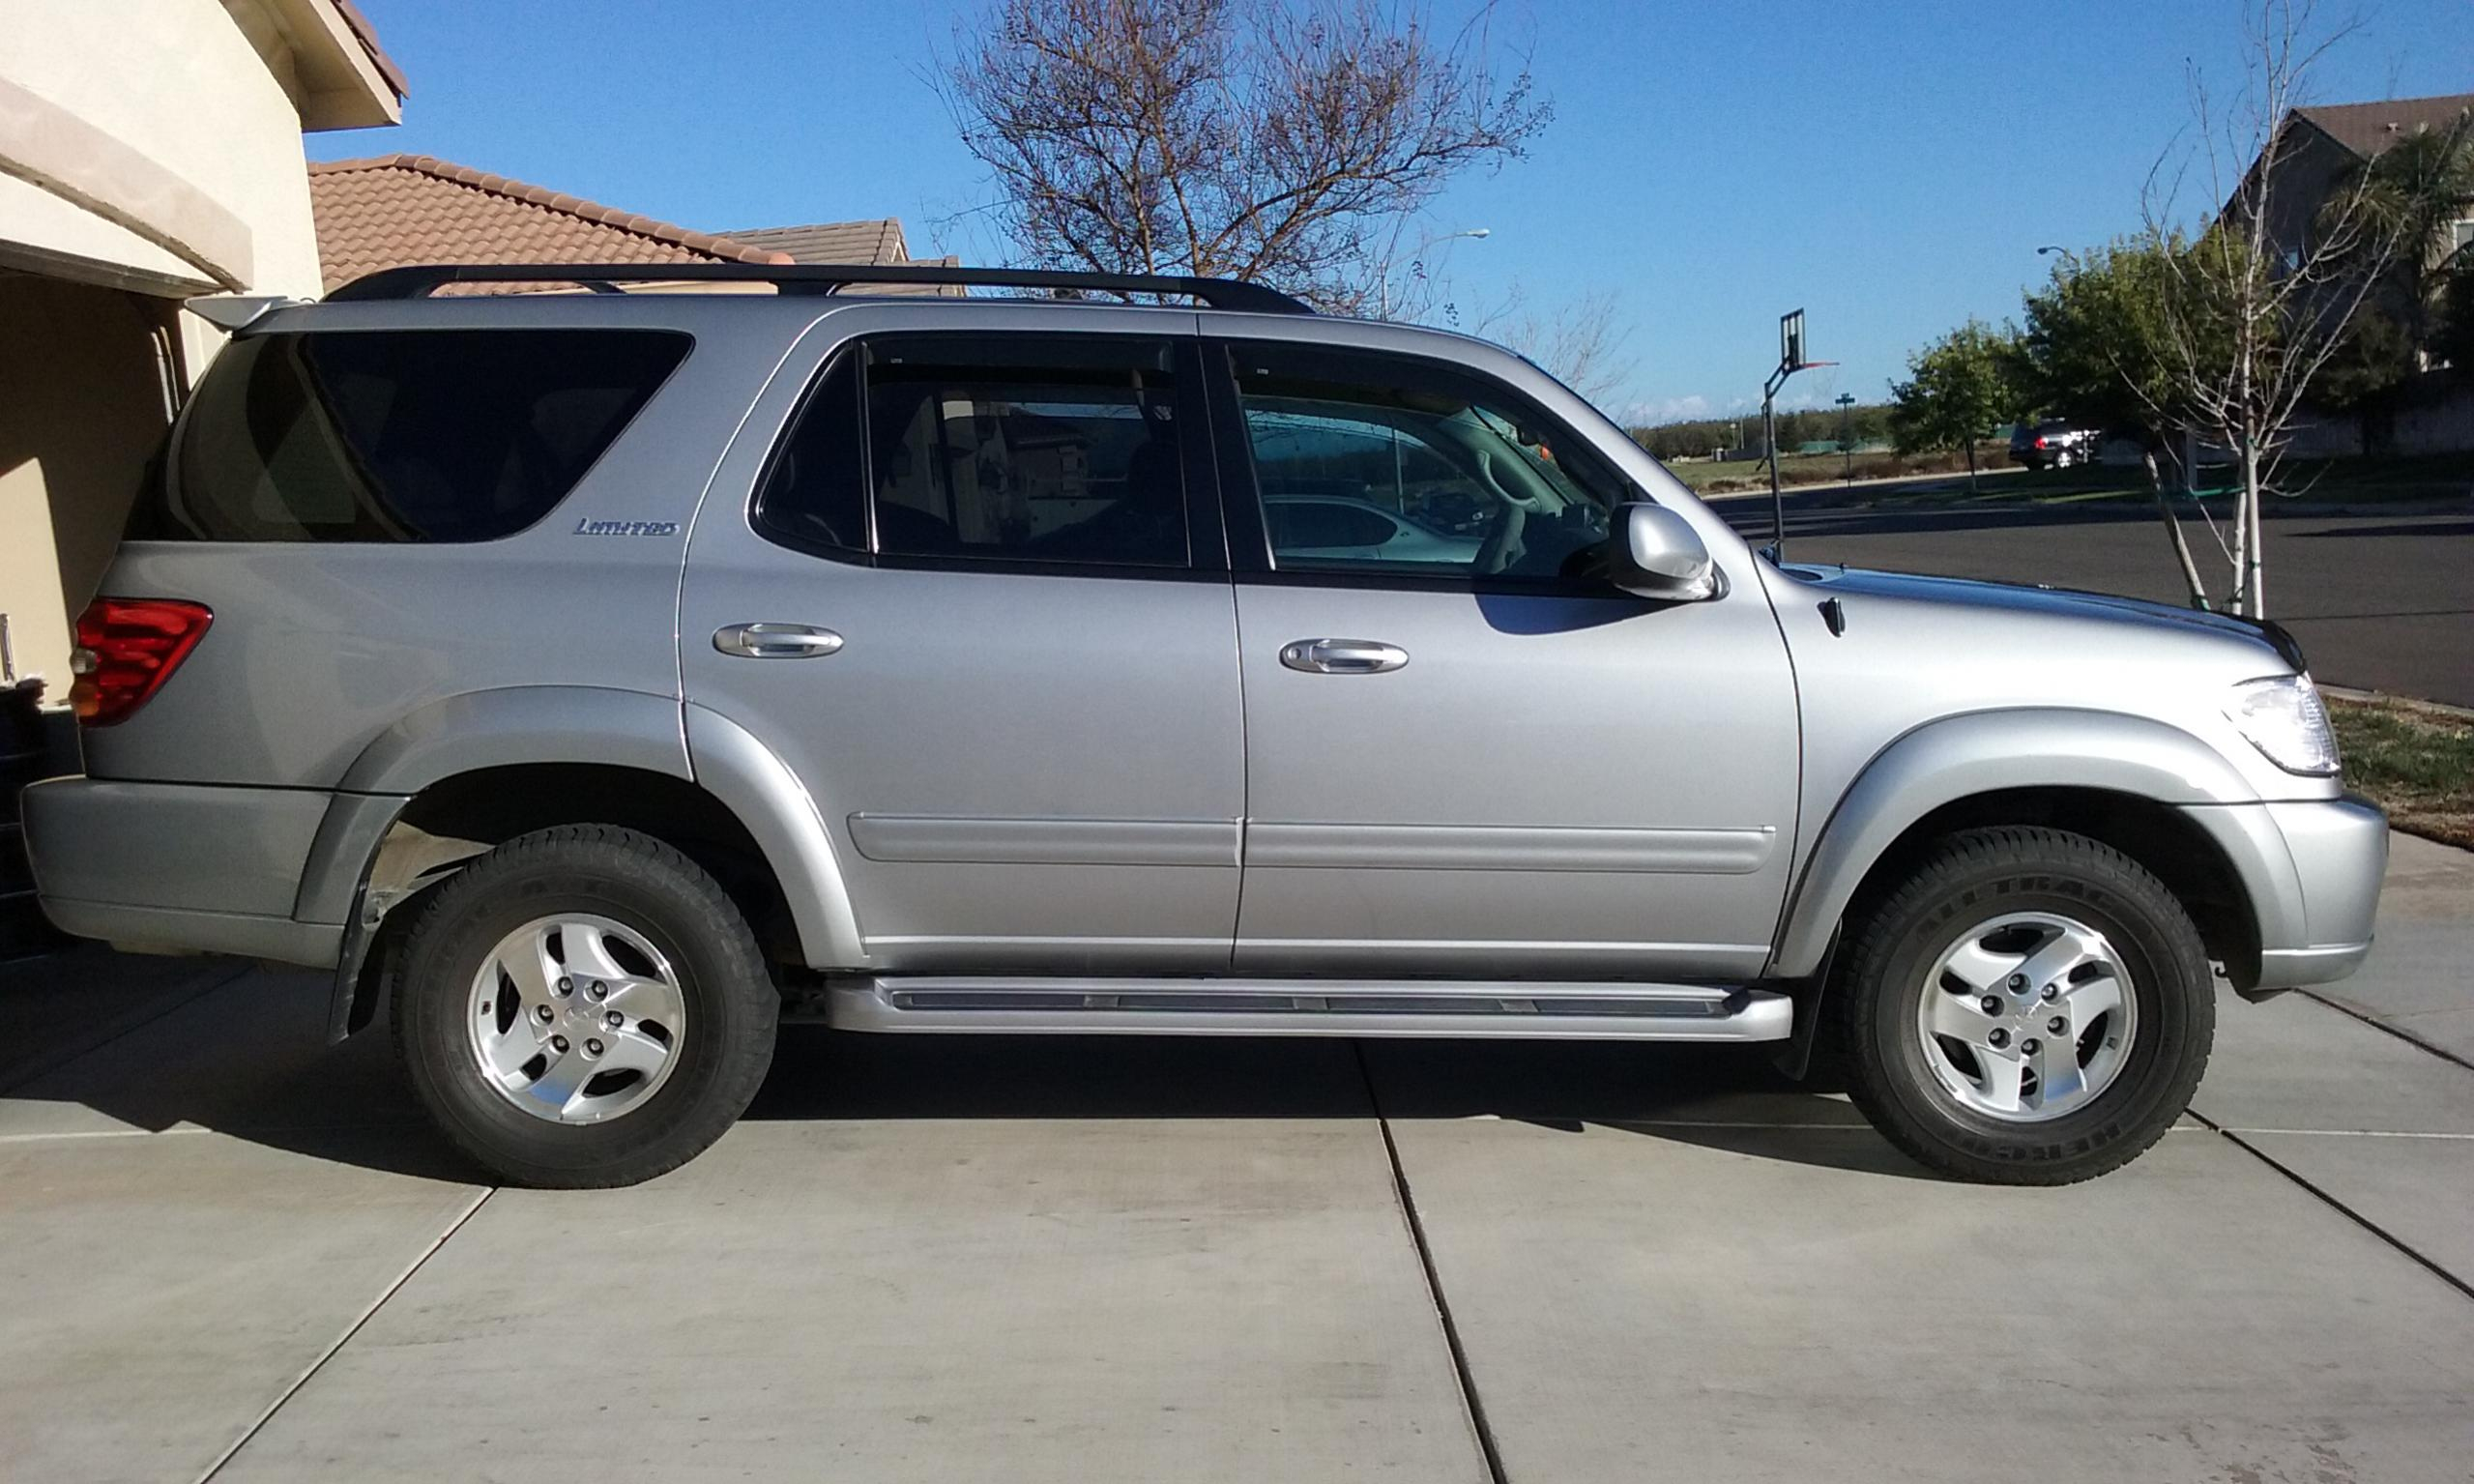 2001 sequoia 4x4 lift questions toyota nation forum 2001 sequoia 4x4 lift questions